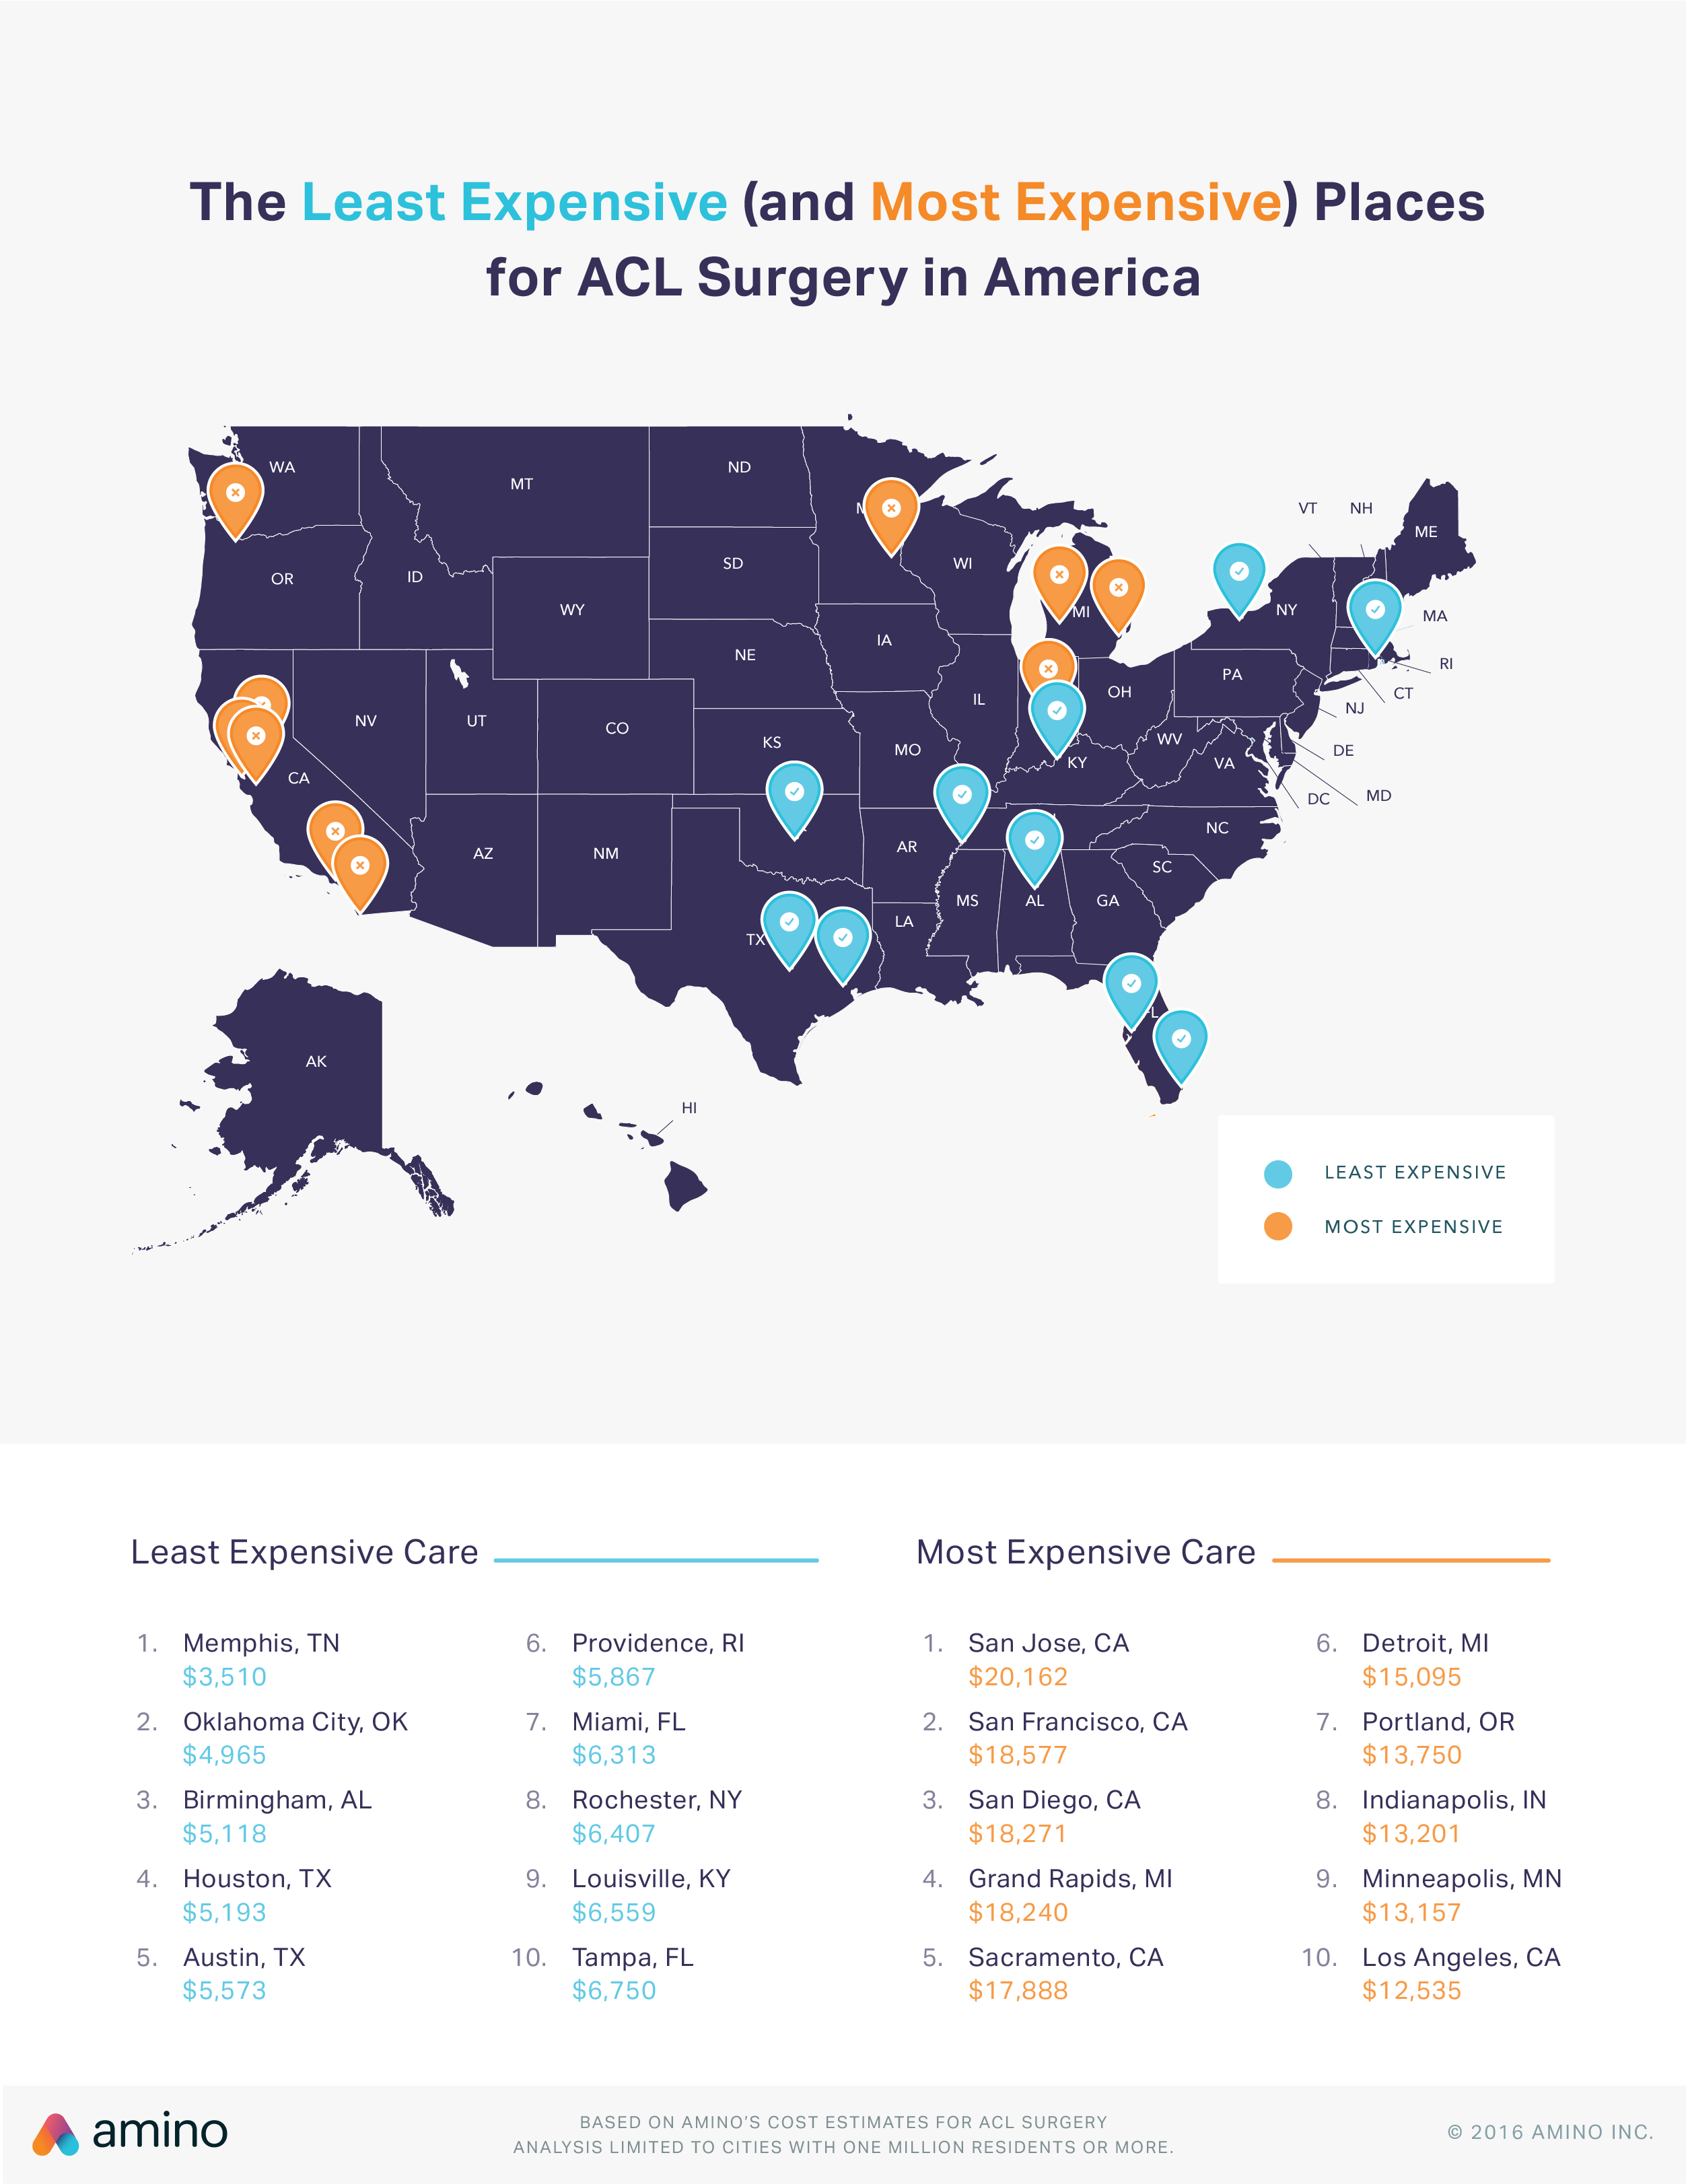 The cost of ACL surgery in the US